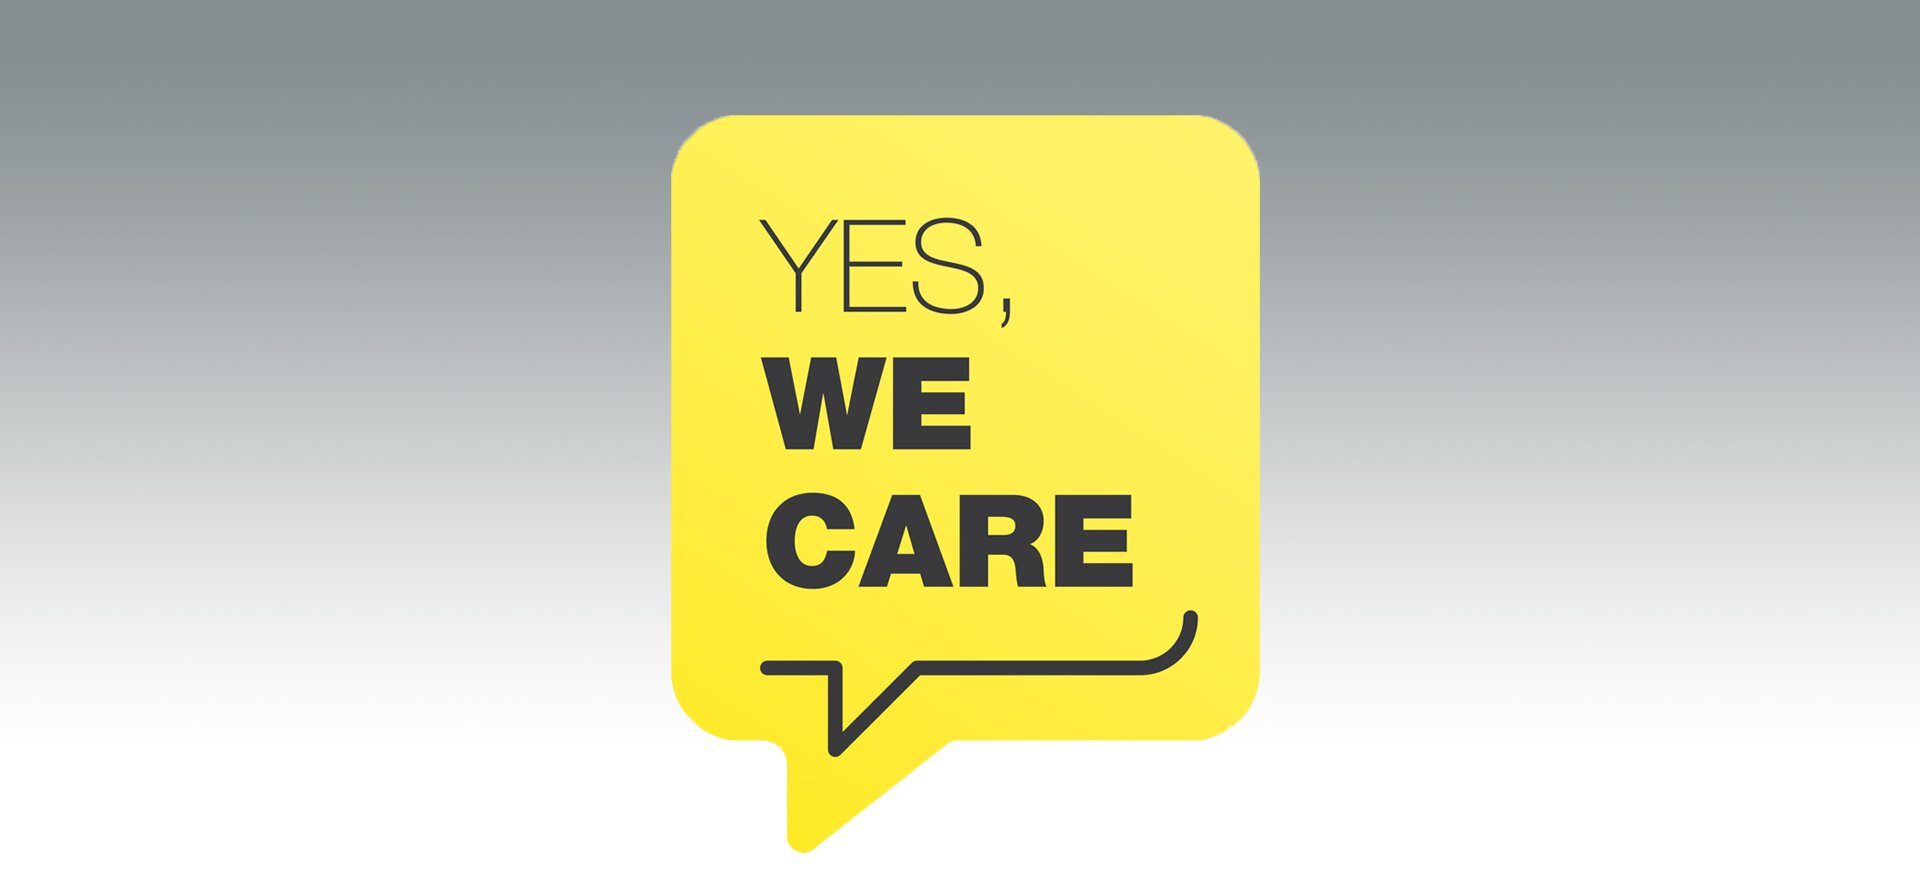 Our Initiative Yes, we care